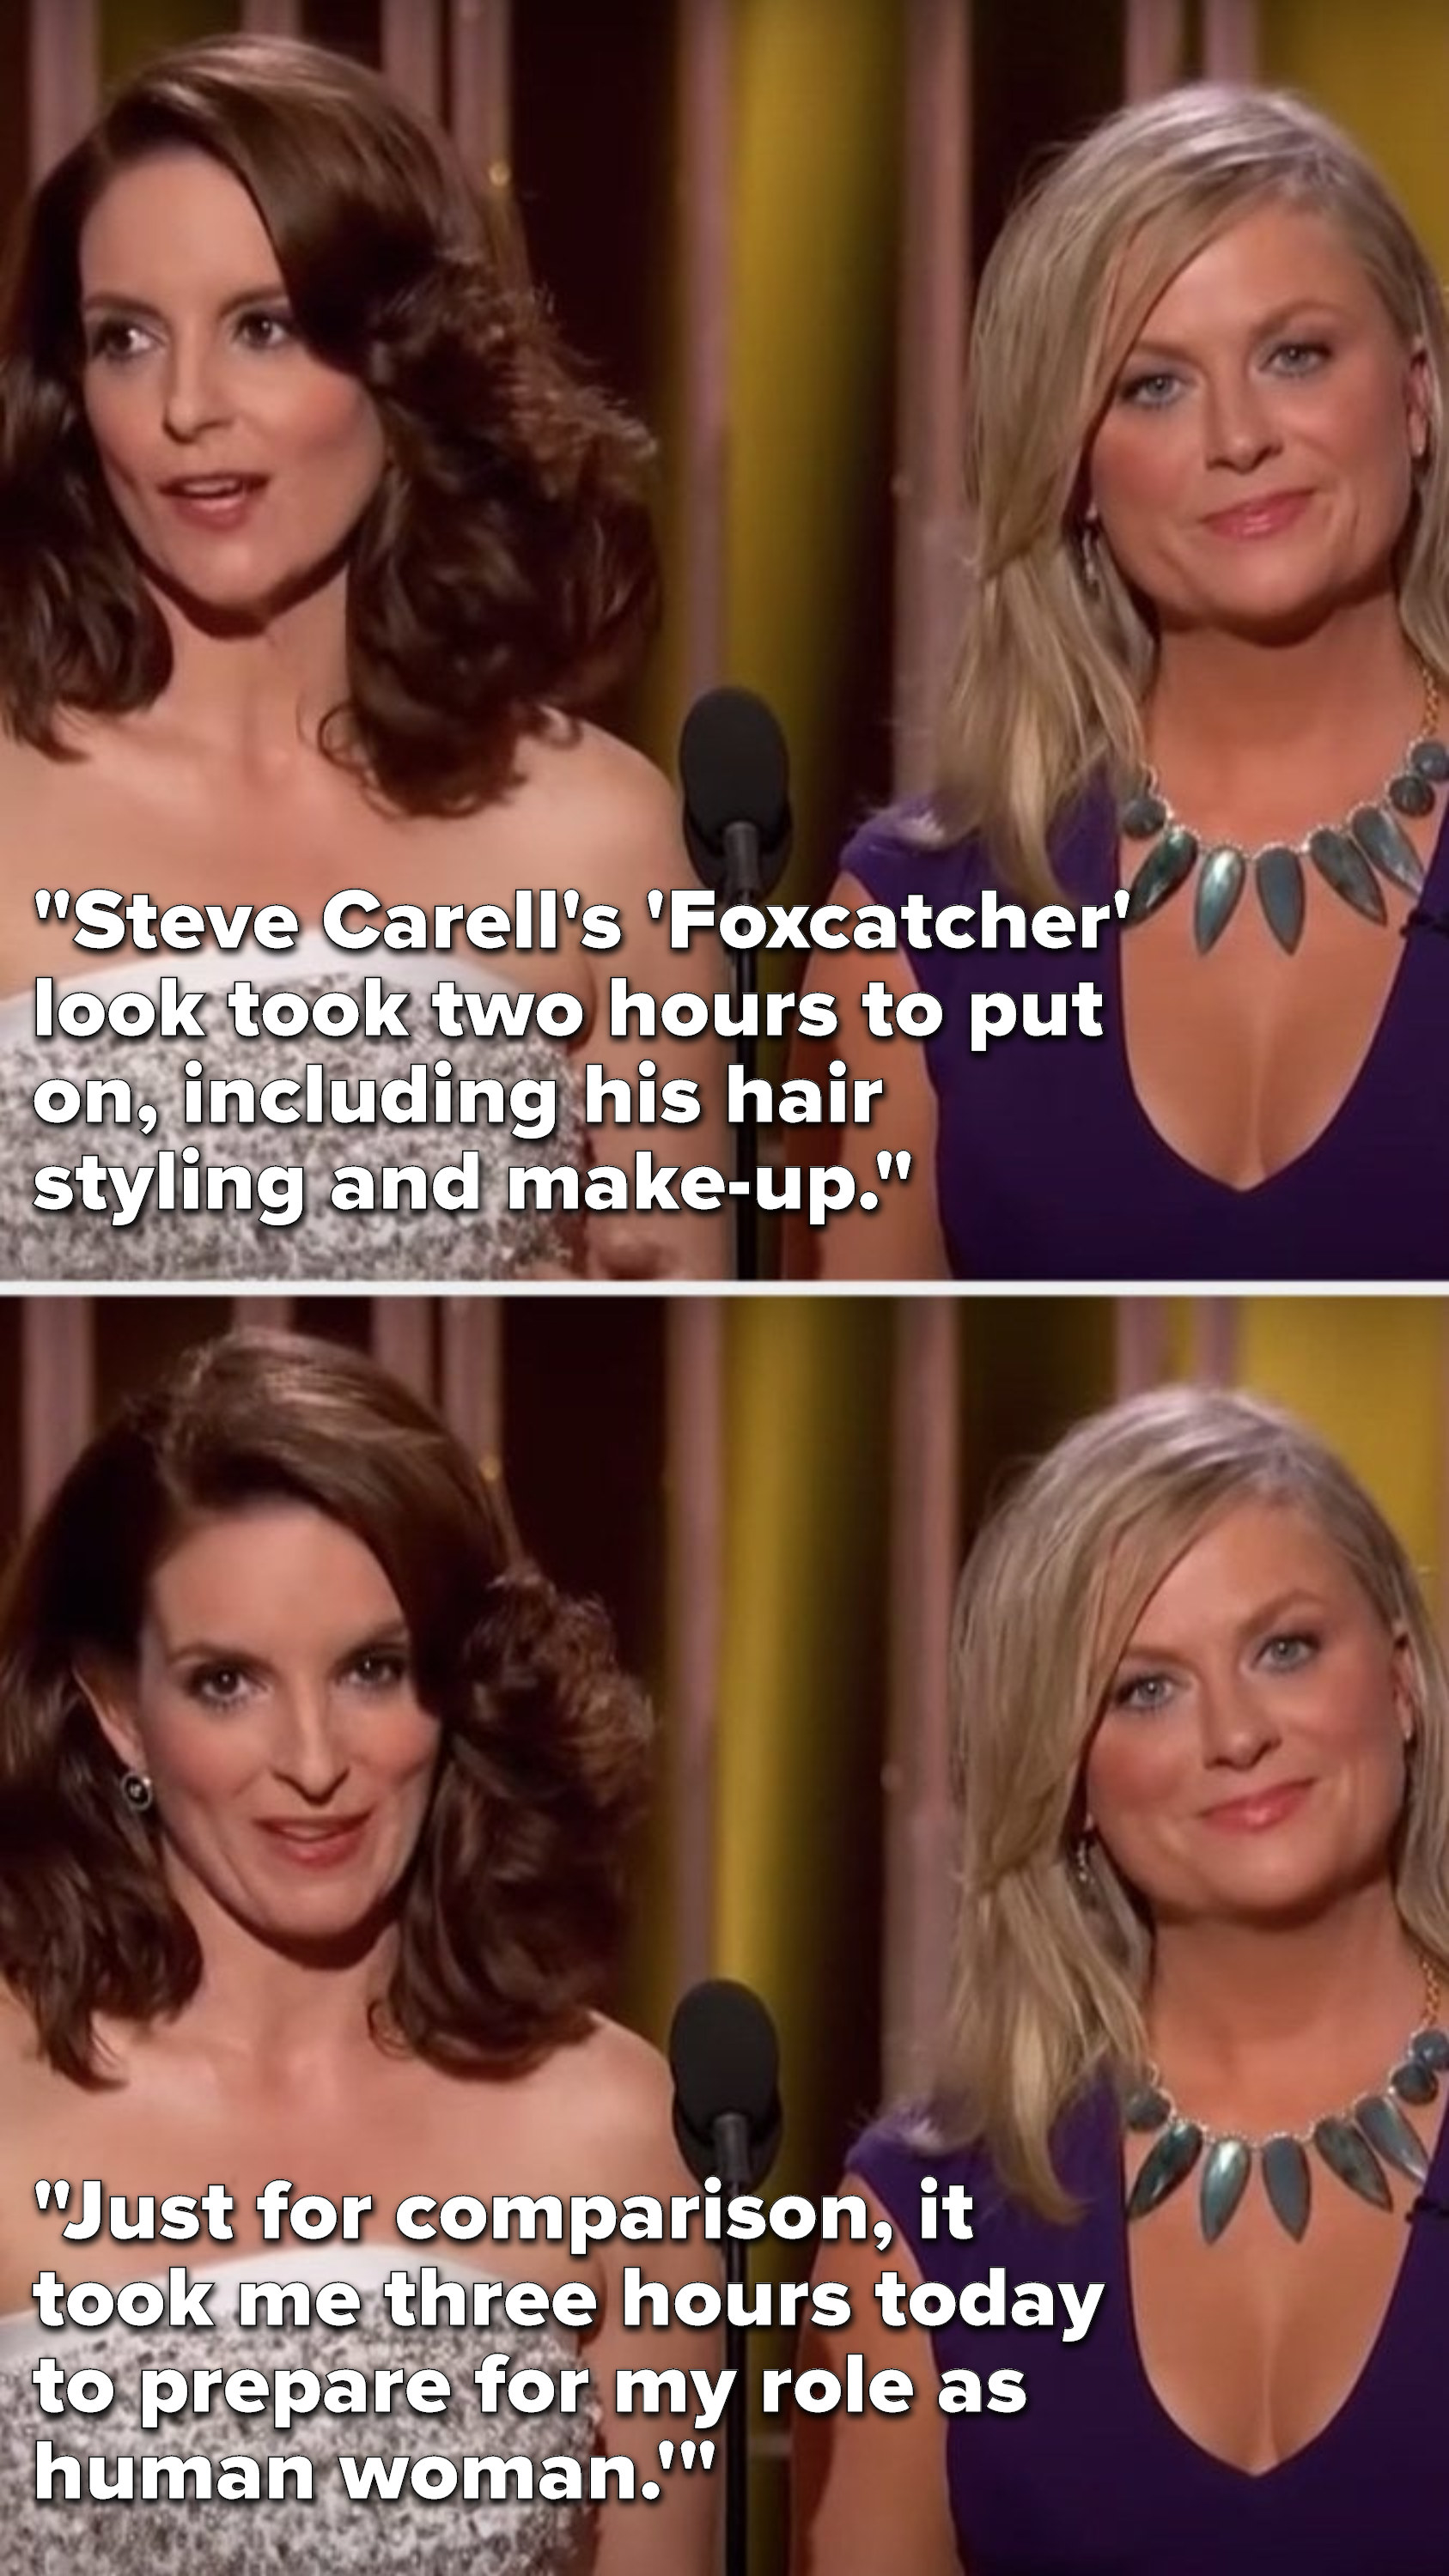 """Fey says, """"Steve Carell's 'Foxcatcher' look took two hours to put on, including his hair styling and make-up, just for comparison, it took me three hours today to prepare for my role as human woman'"""""""